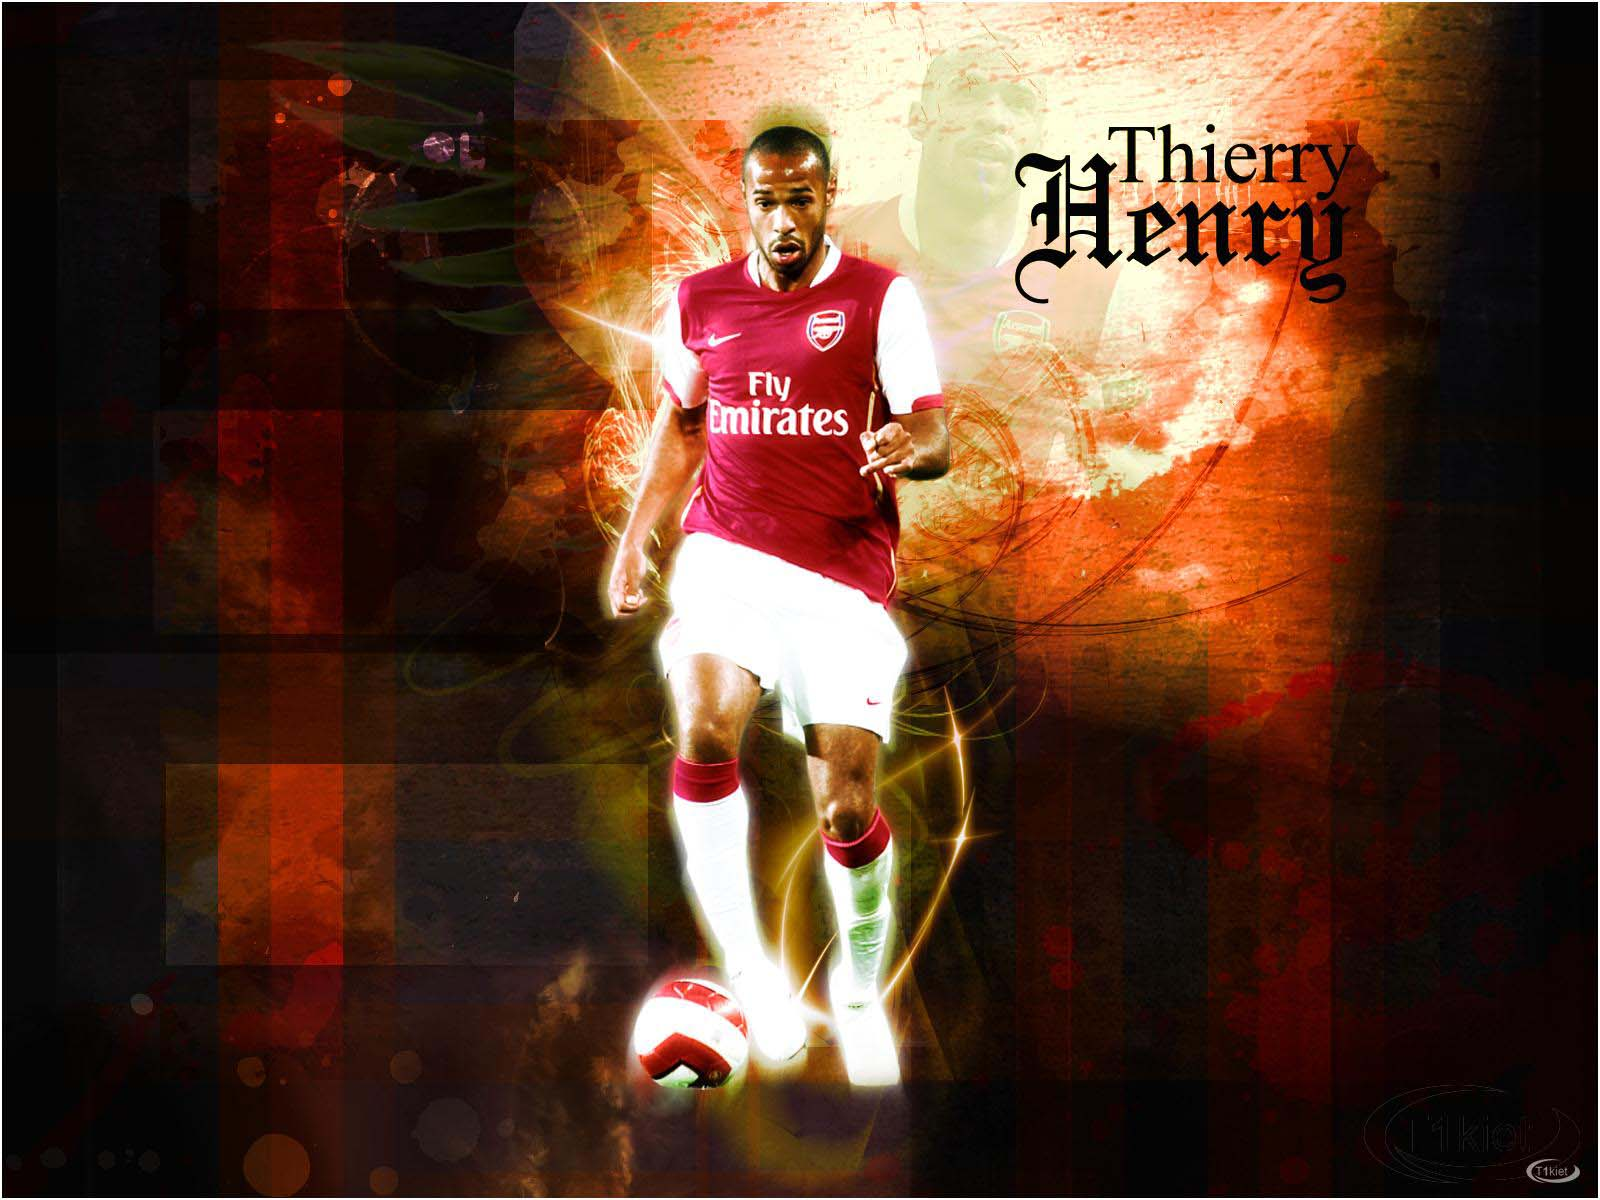 Thierry henry arsenal wallpaper 2012